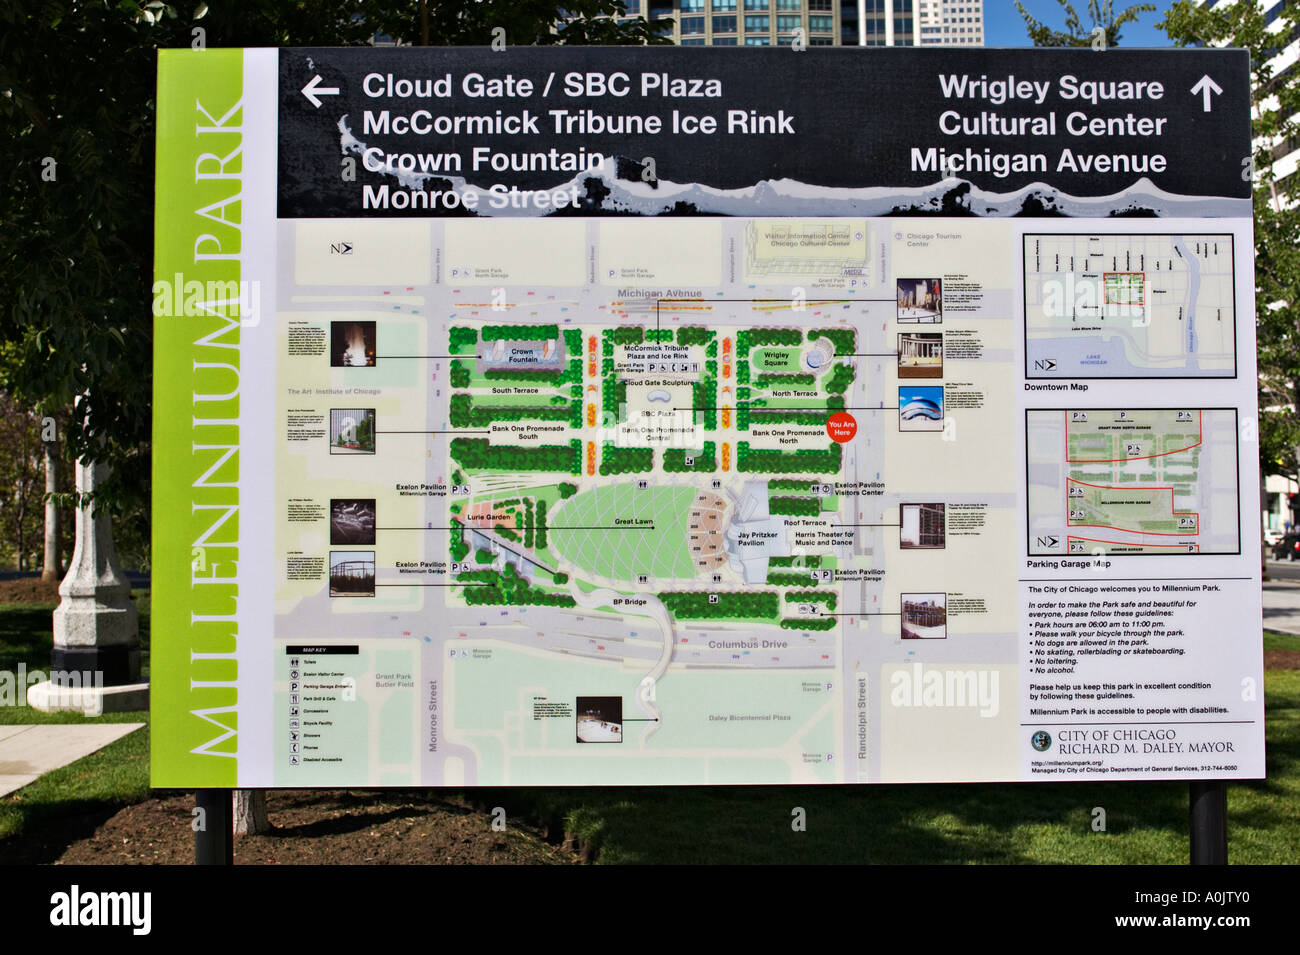 PARKS Chicago Illinois Informational map of Millennium Park ... on mile square park map, millenium garden chicago map, drawings of water park map, rogers park chicago map, millenium park skyline, morgan park chicago map, marquette park chicago map, lincoln park chicago map, milleneum park map, chicago park district map, washington park chicago map, humboldt park chicago map, jackson park chicago map, millenium park chicago library, millenium park chicago statue, millenium park navy pier,